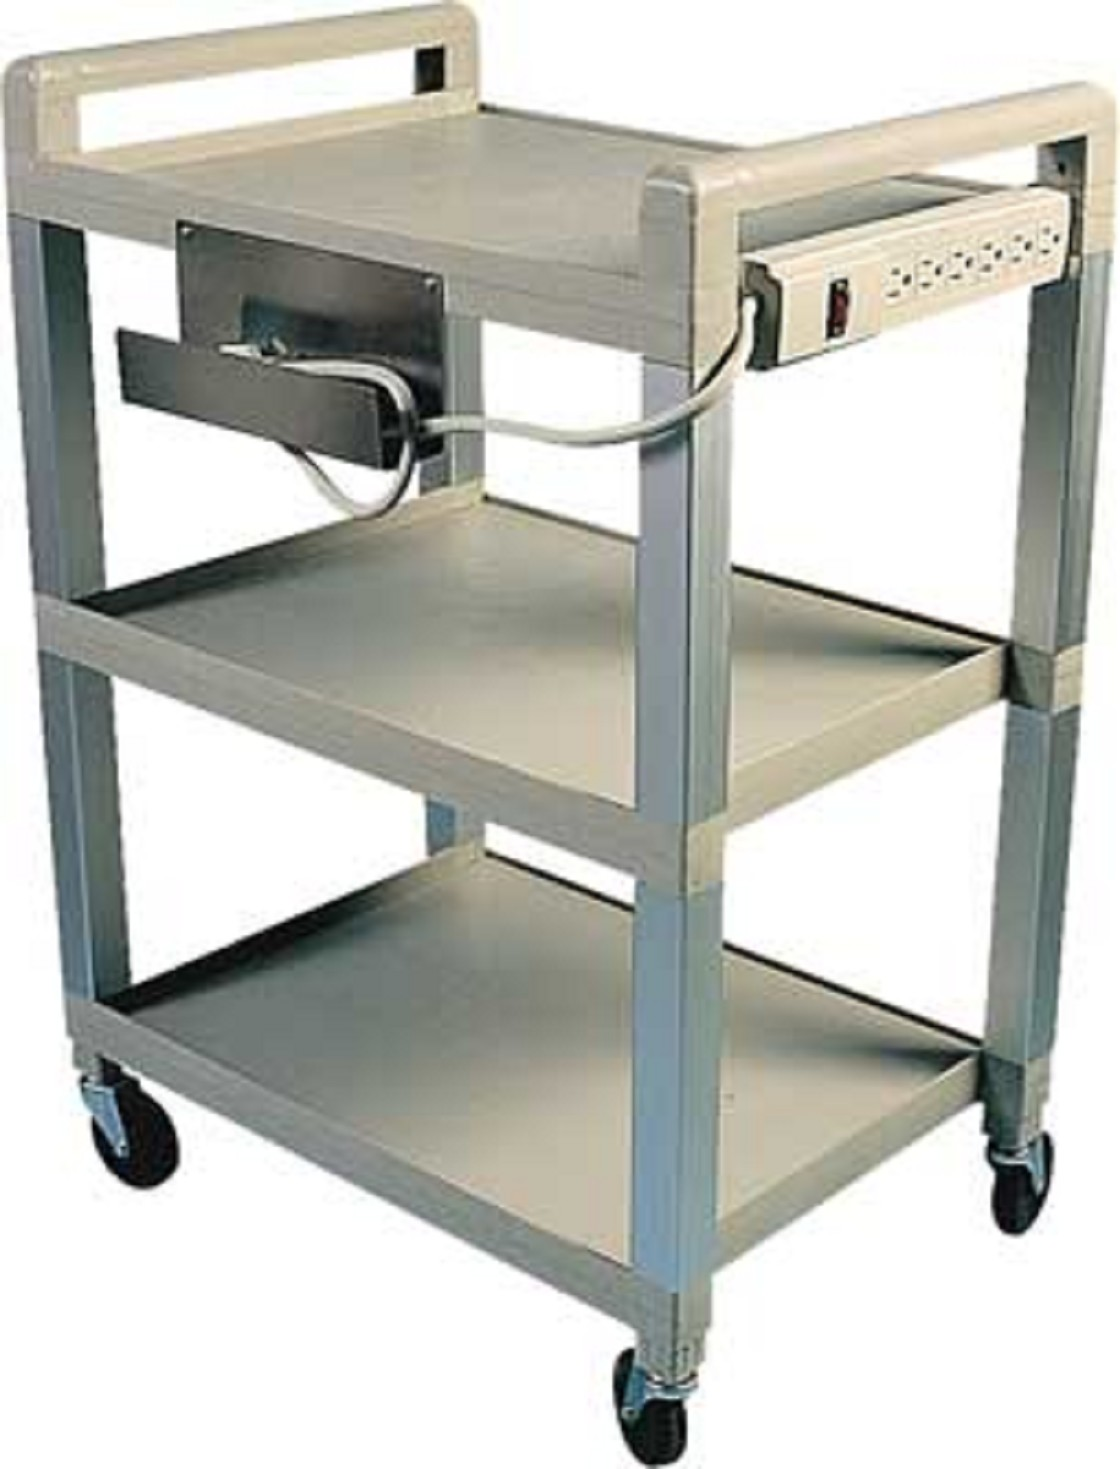 poly 3 shelf easy roll cart free shipping. Black Bedroom Furniture Sets. Home Design Ideas